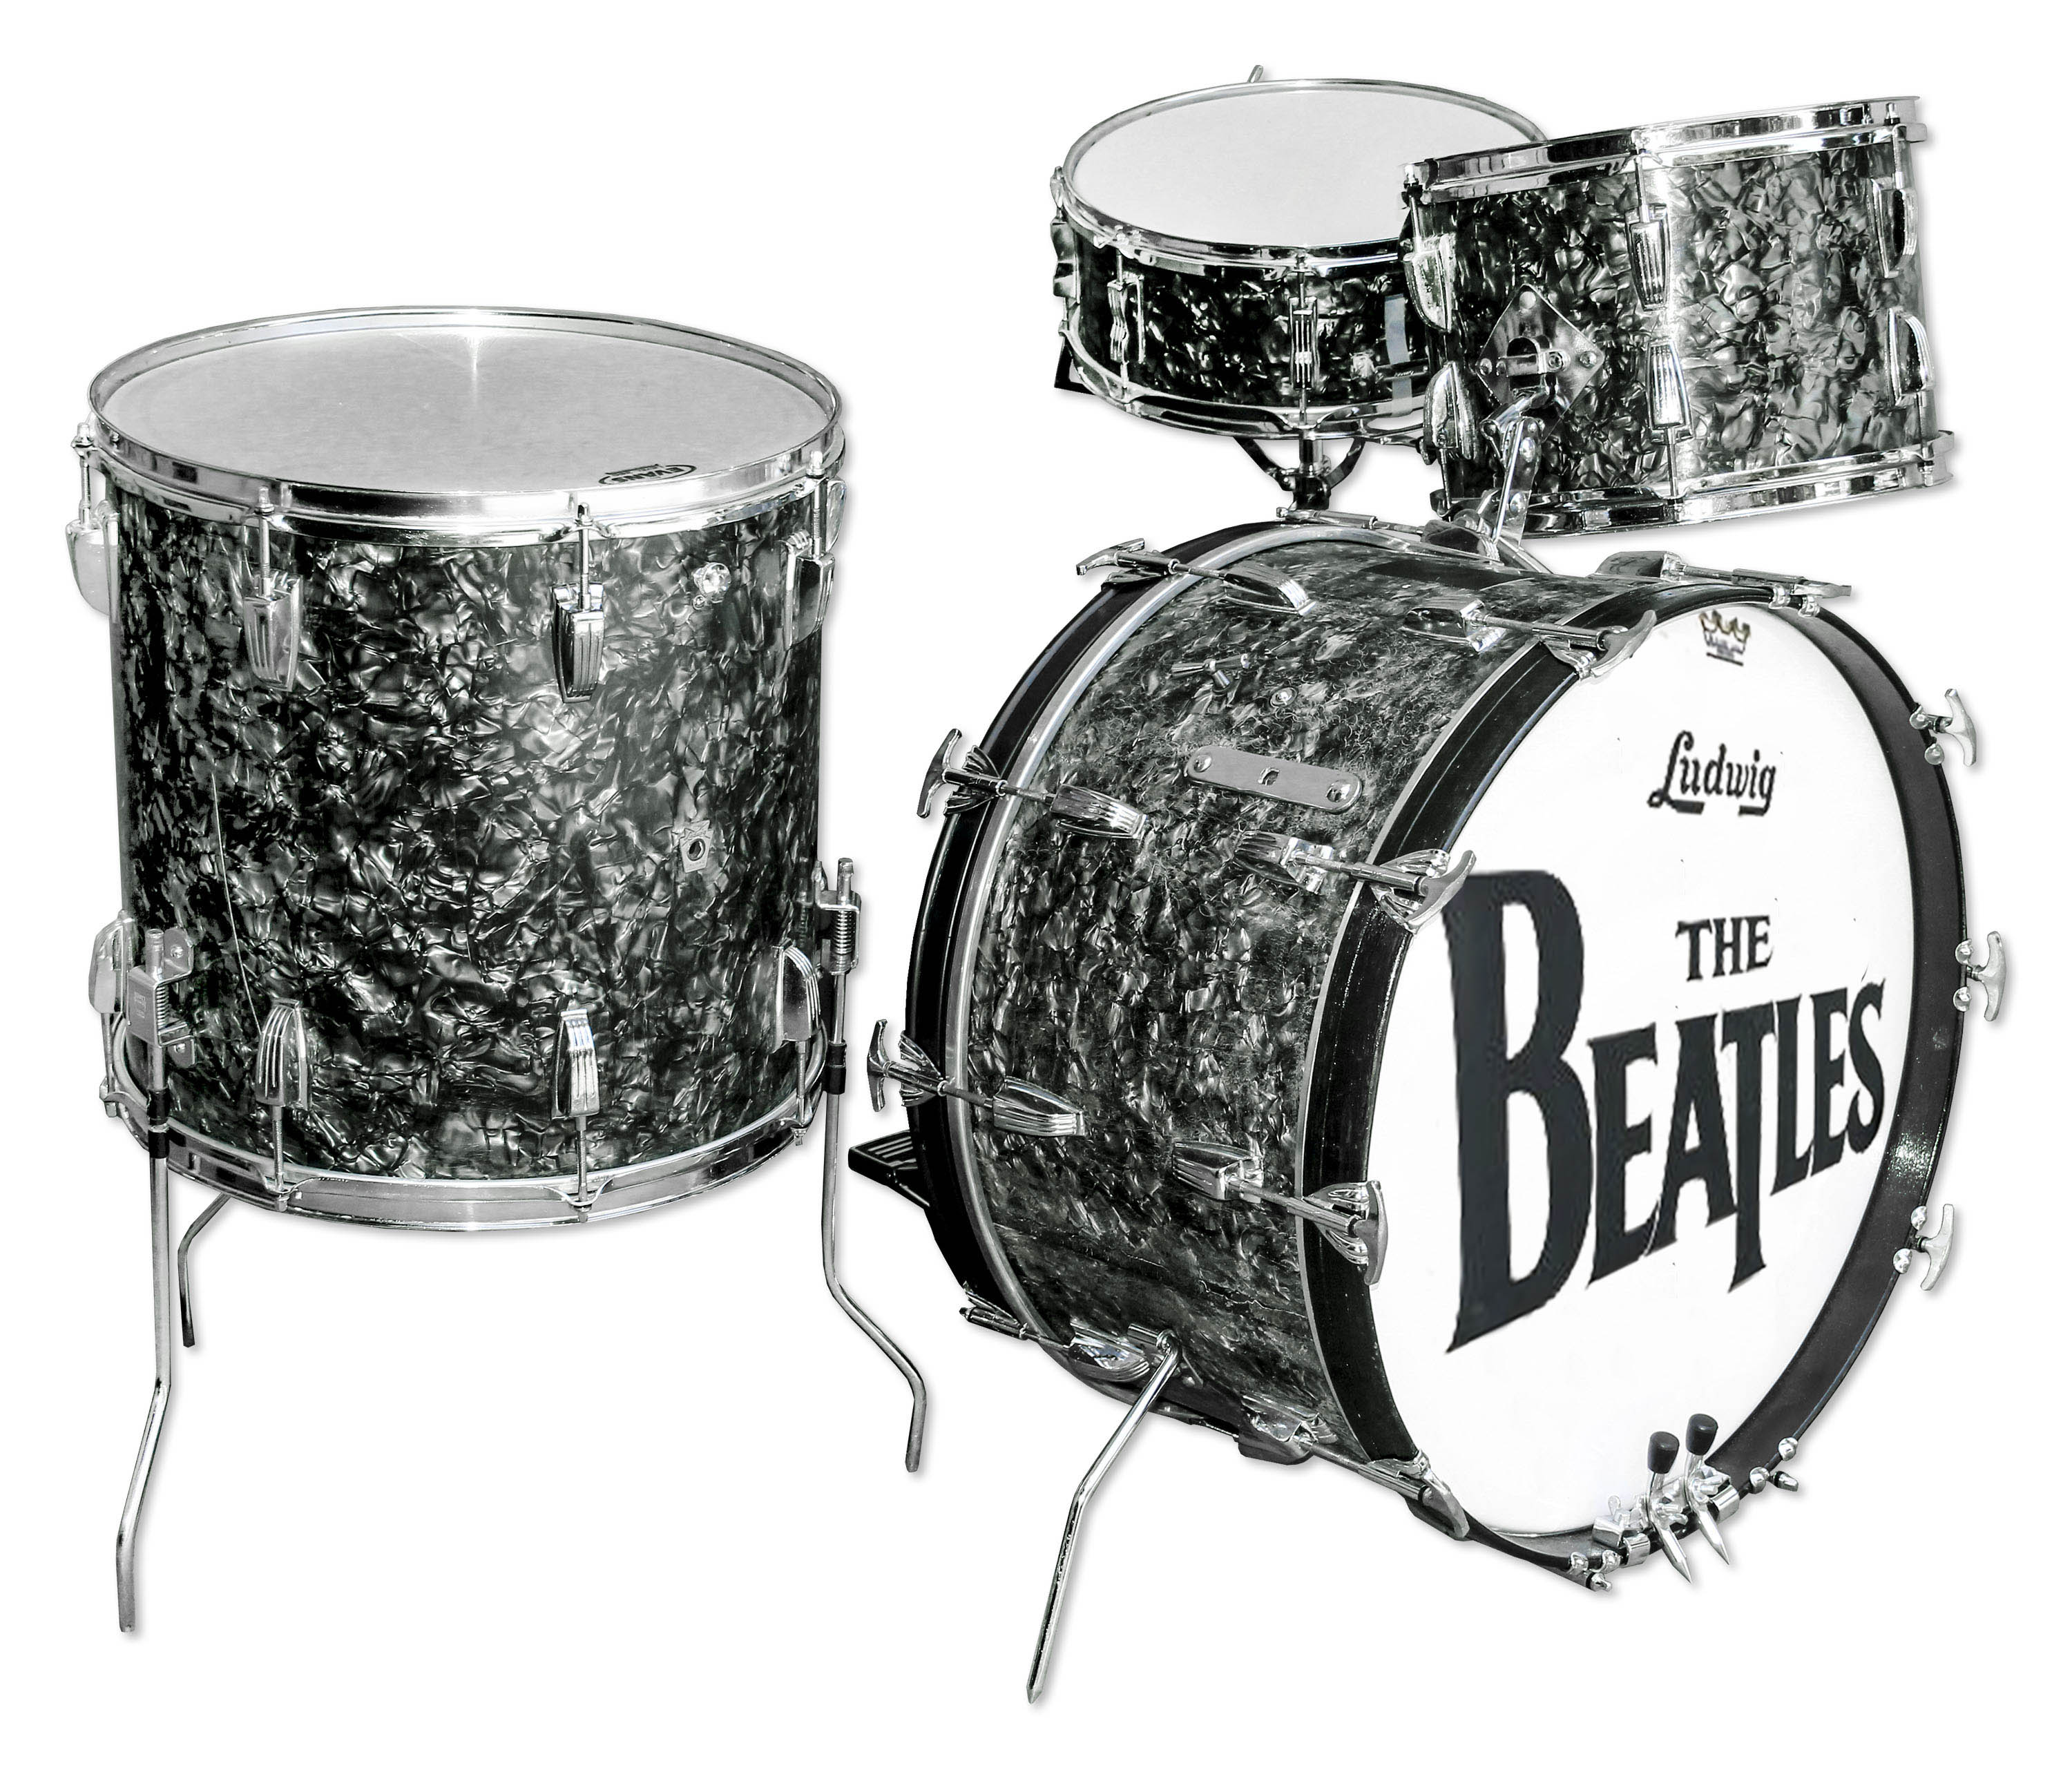 Beatles memorabilia Drum Kit Used to Record The Beatles' Very First Single ''Love Me Do'', on Their Debut Album ''Please Please Me'' -- Also Used on ''P.S. I Love You''